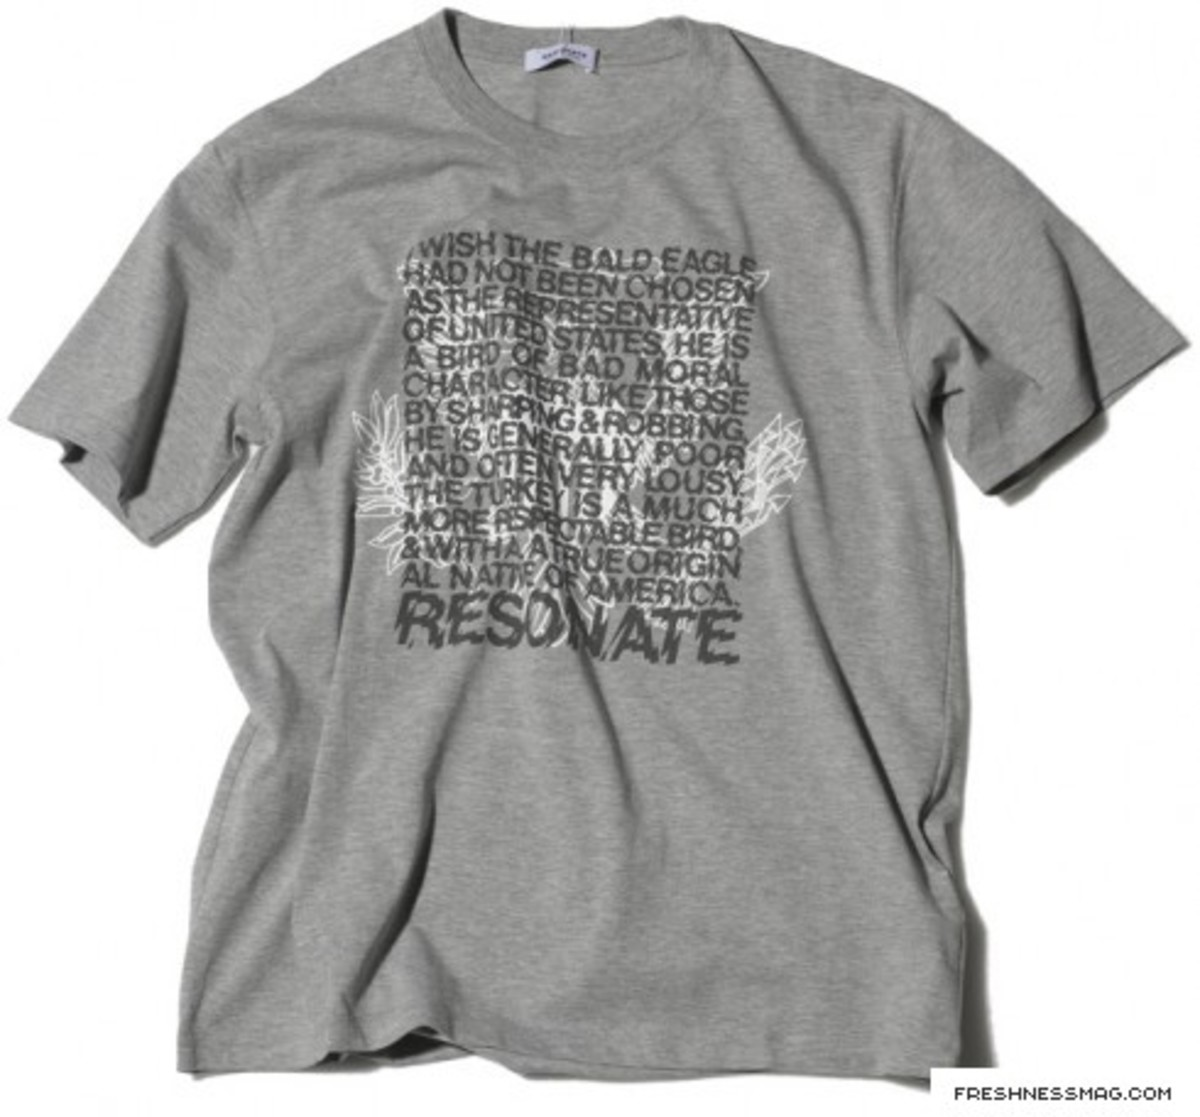 Resonate Goodenough - Fall/Winter 2008 Collection